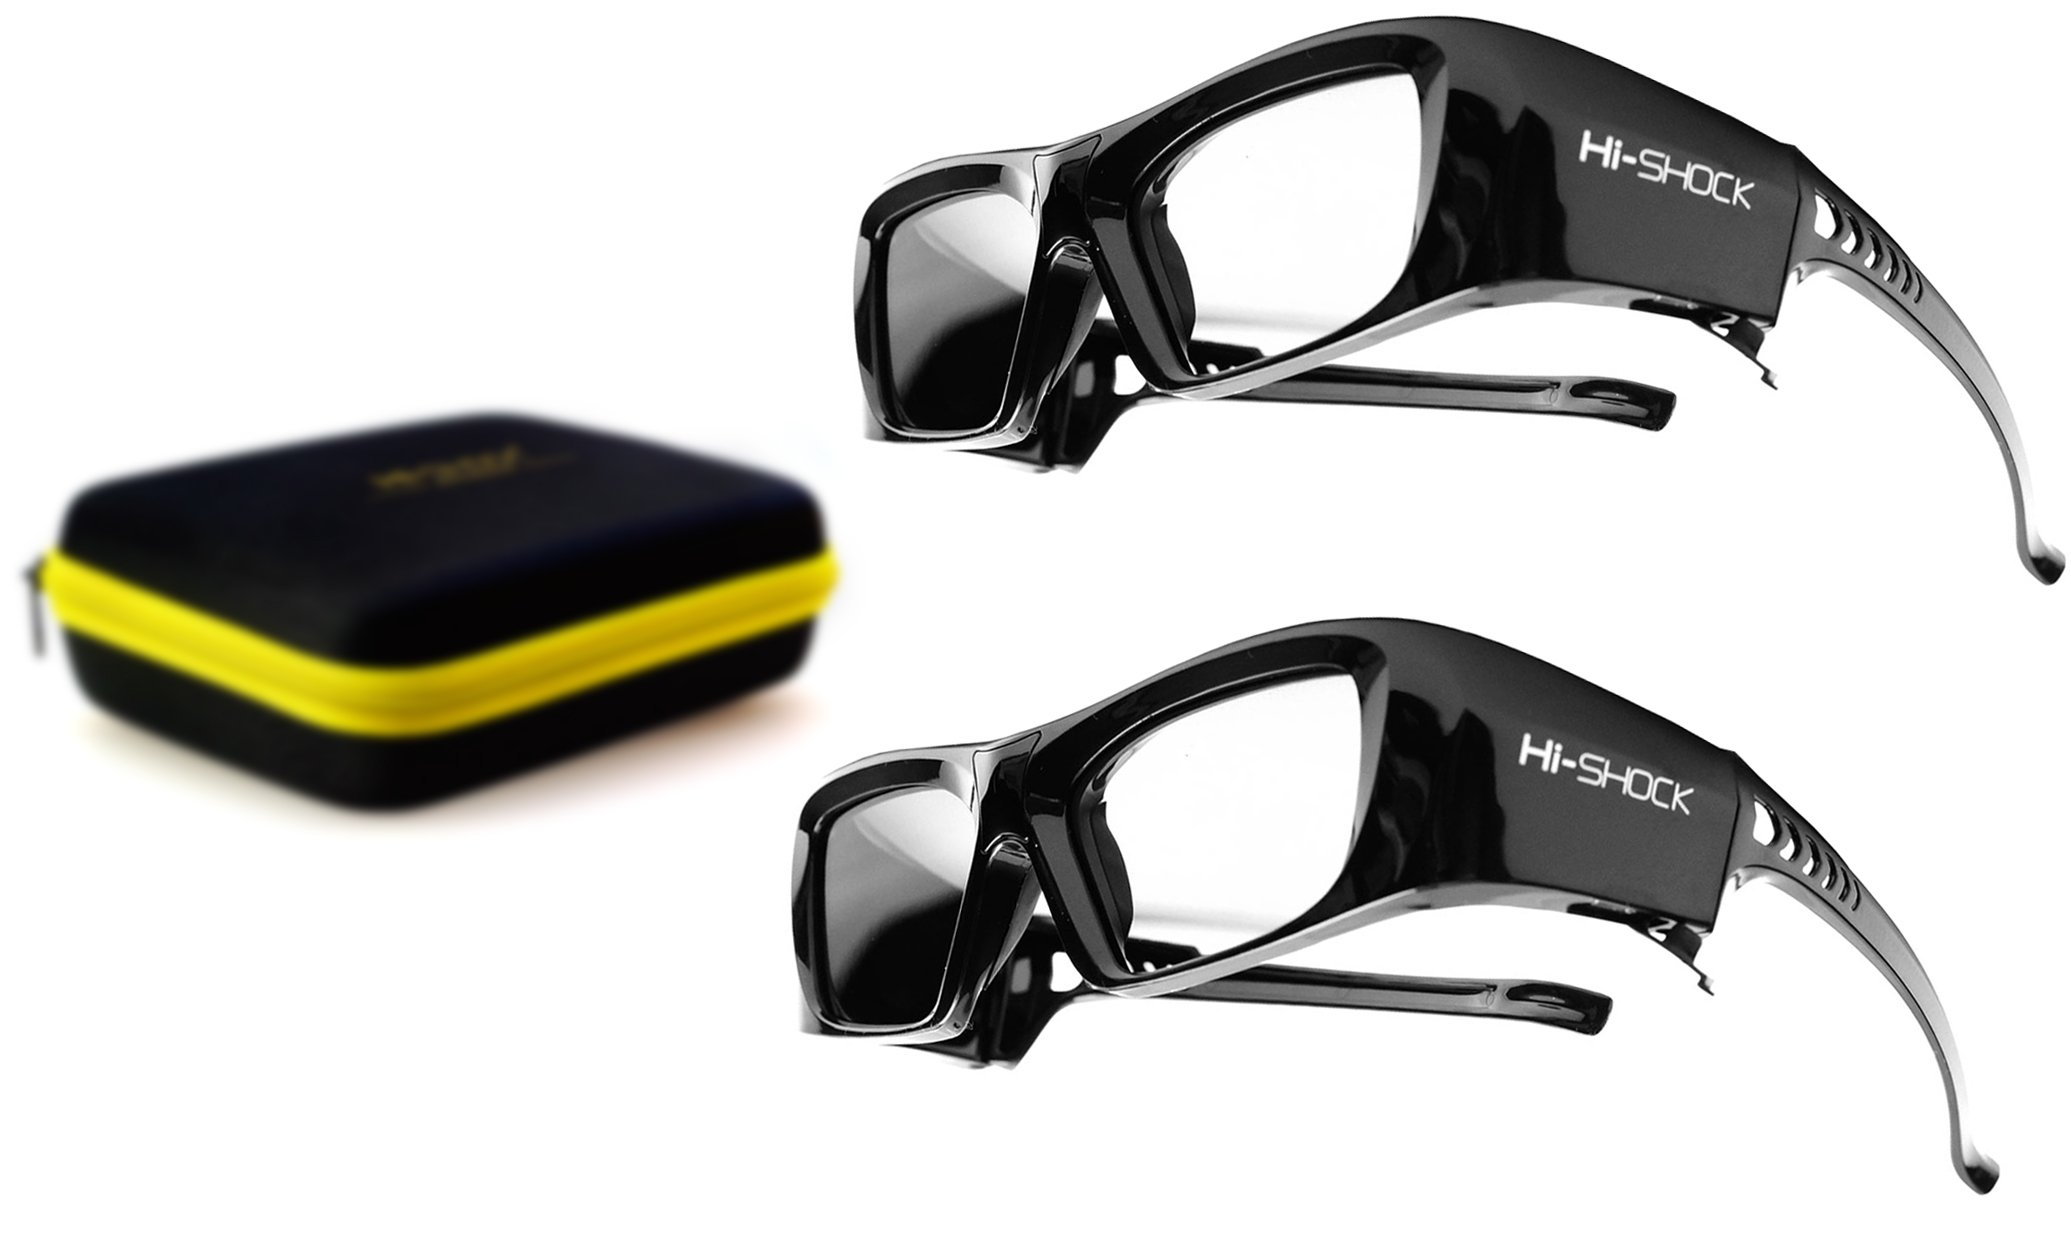 2X Hi-SHOCK Black Diamond | 3D Active Glasses for 2013-2019 Sony, Samsung, Sharp, LG Plasma, PANASONIC FullHD/HDR / 4k TV | comp. with TDG-BT500A, SSG-5150GB, TY-ER3D4MU, AN3DG40